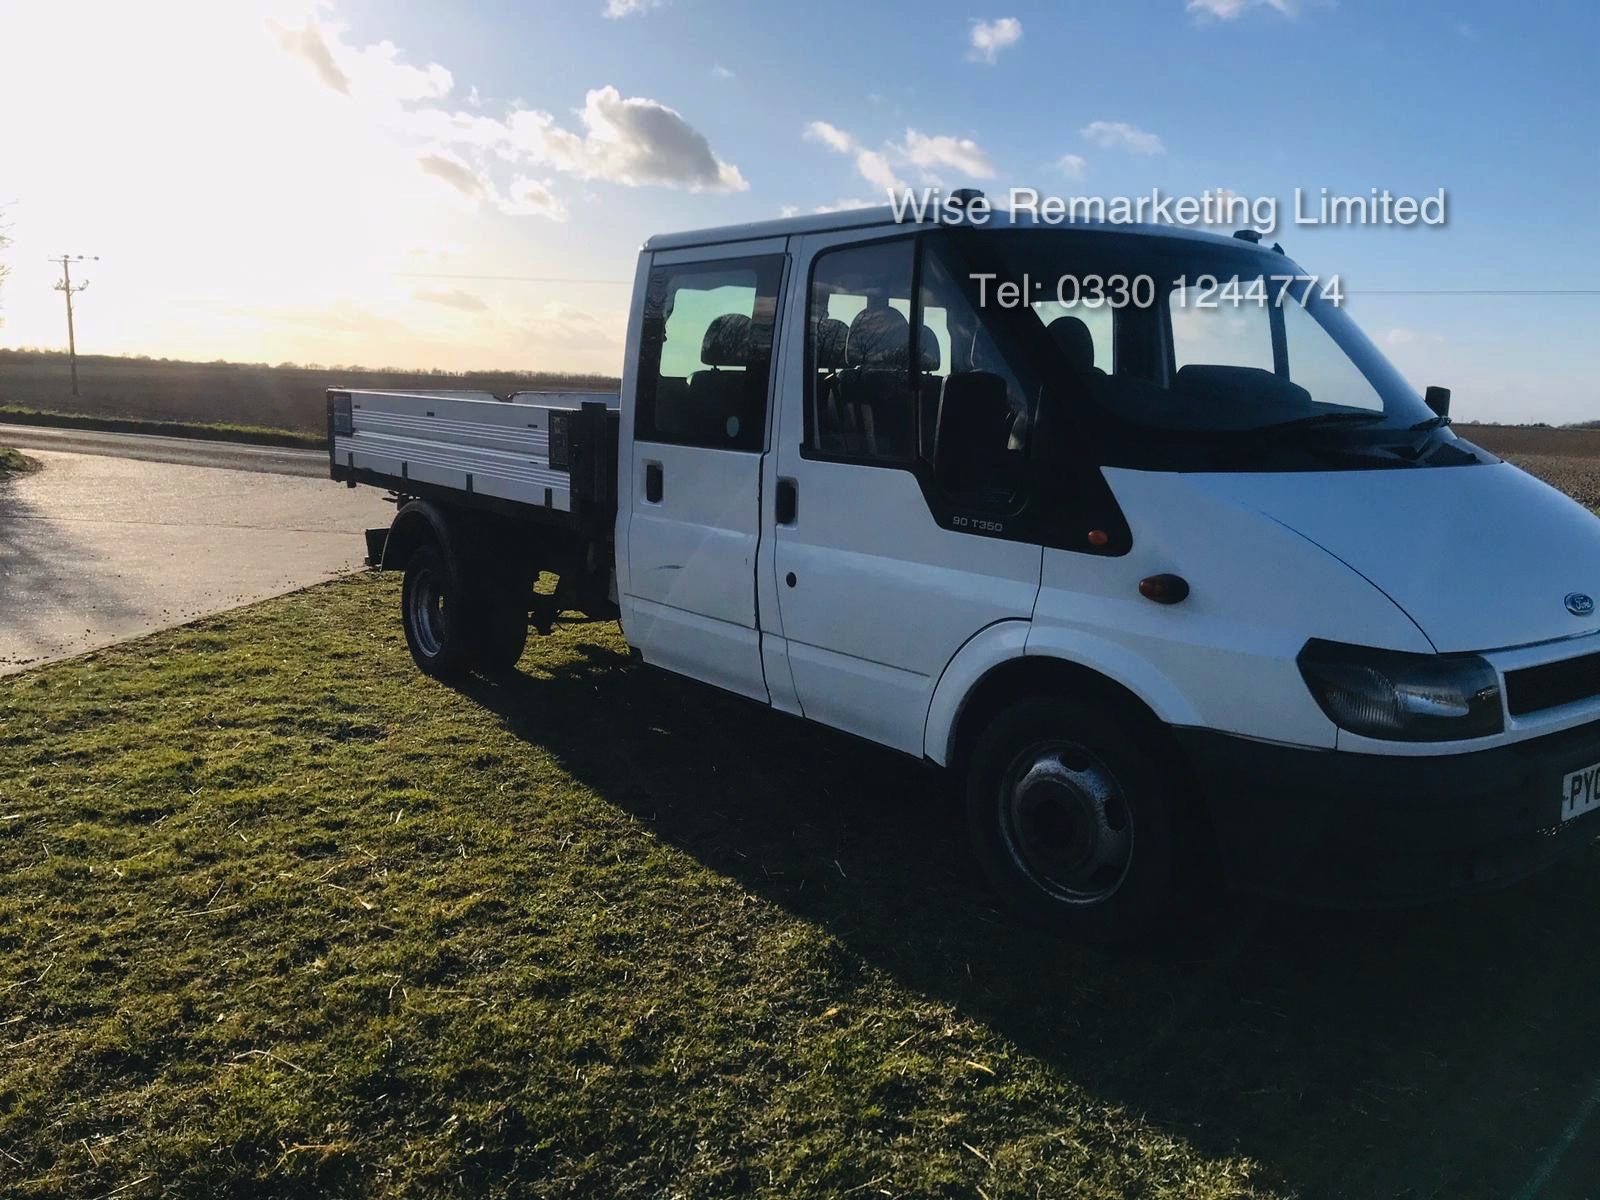 Ford Transit 350 Crew Cab Tipper LWB - 2005 05 Reg - 6 Seater - SAVE 20% NO VAT